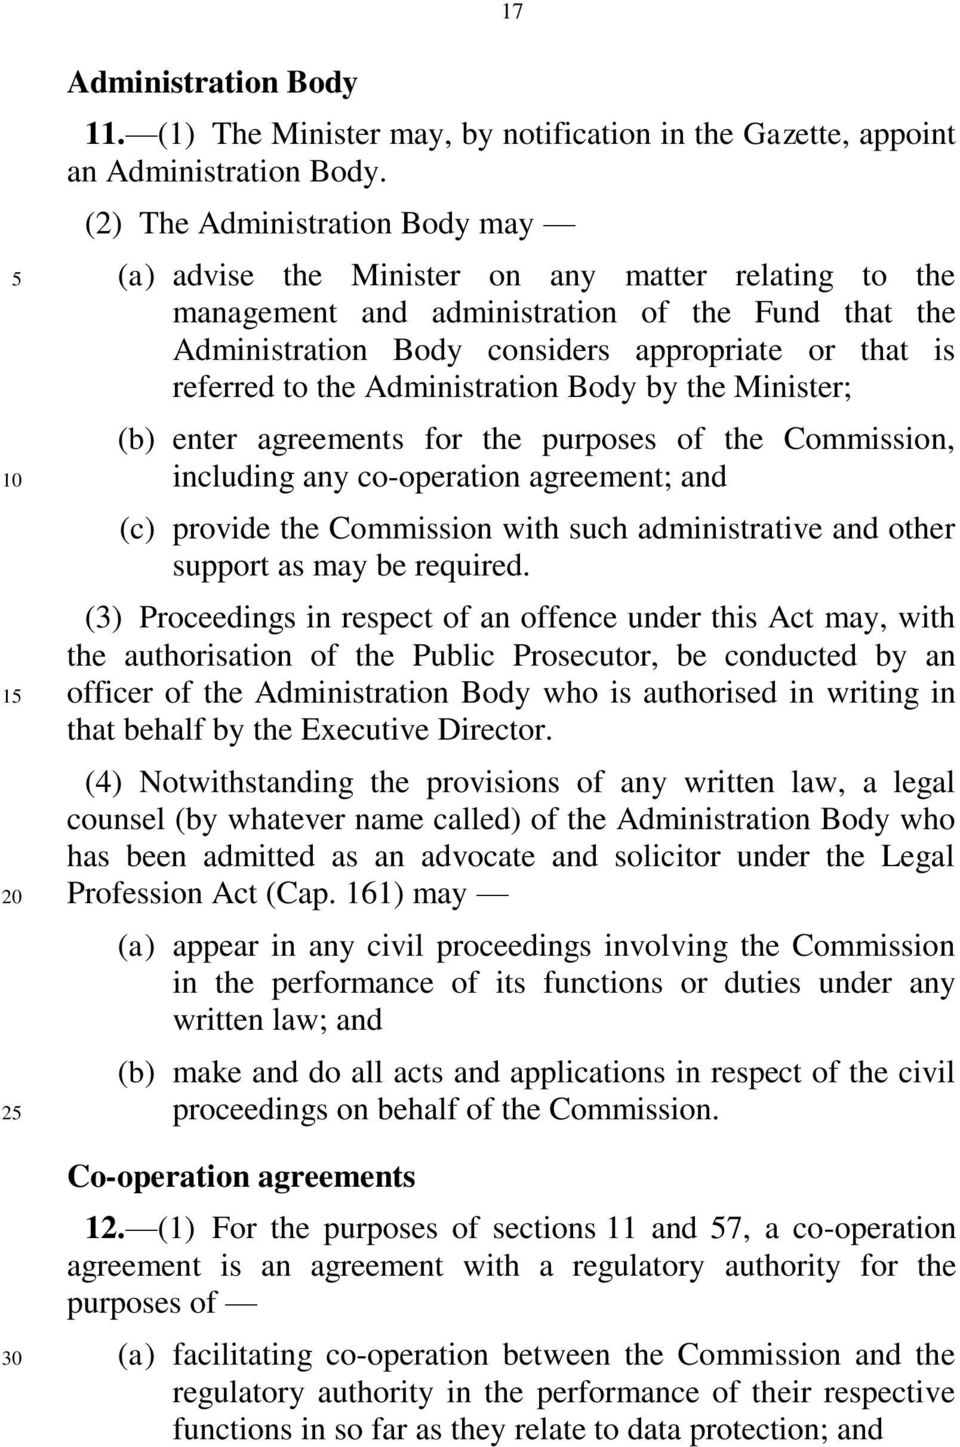 to the Administration Body by the Minister; (b) enter agreements for the purposes of the Commission, including any co-operation agreement; and (c) provide the Commission with such administrative and